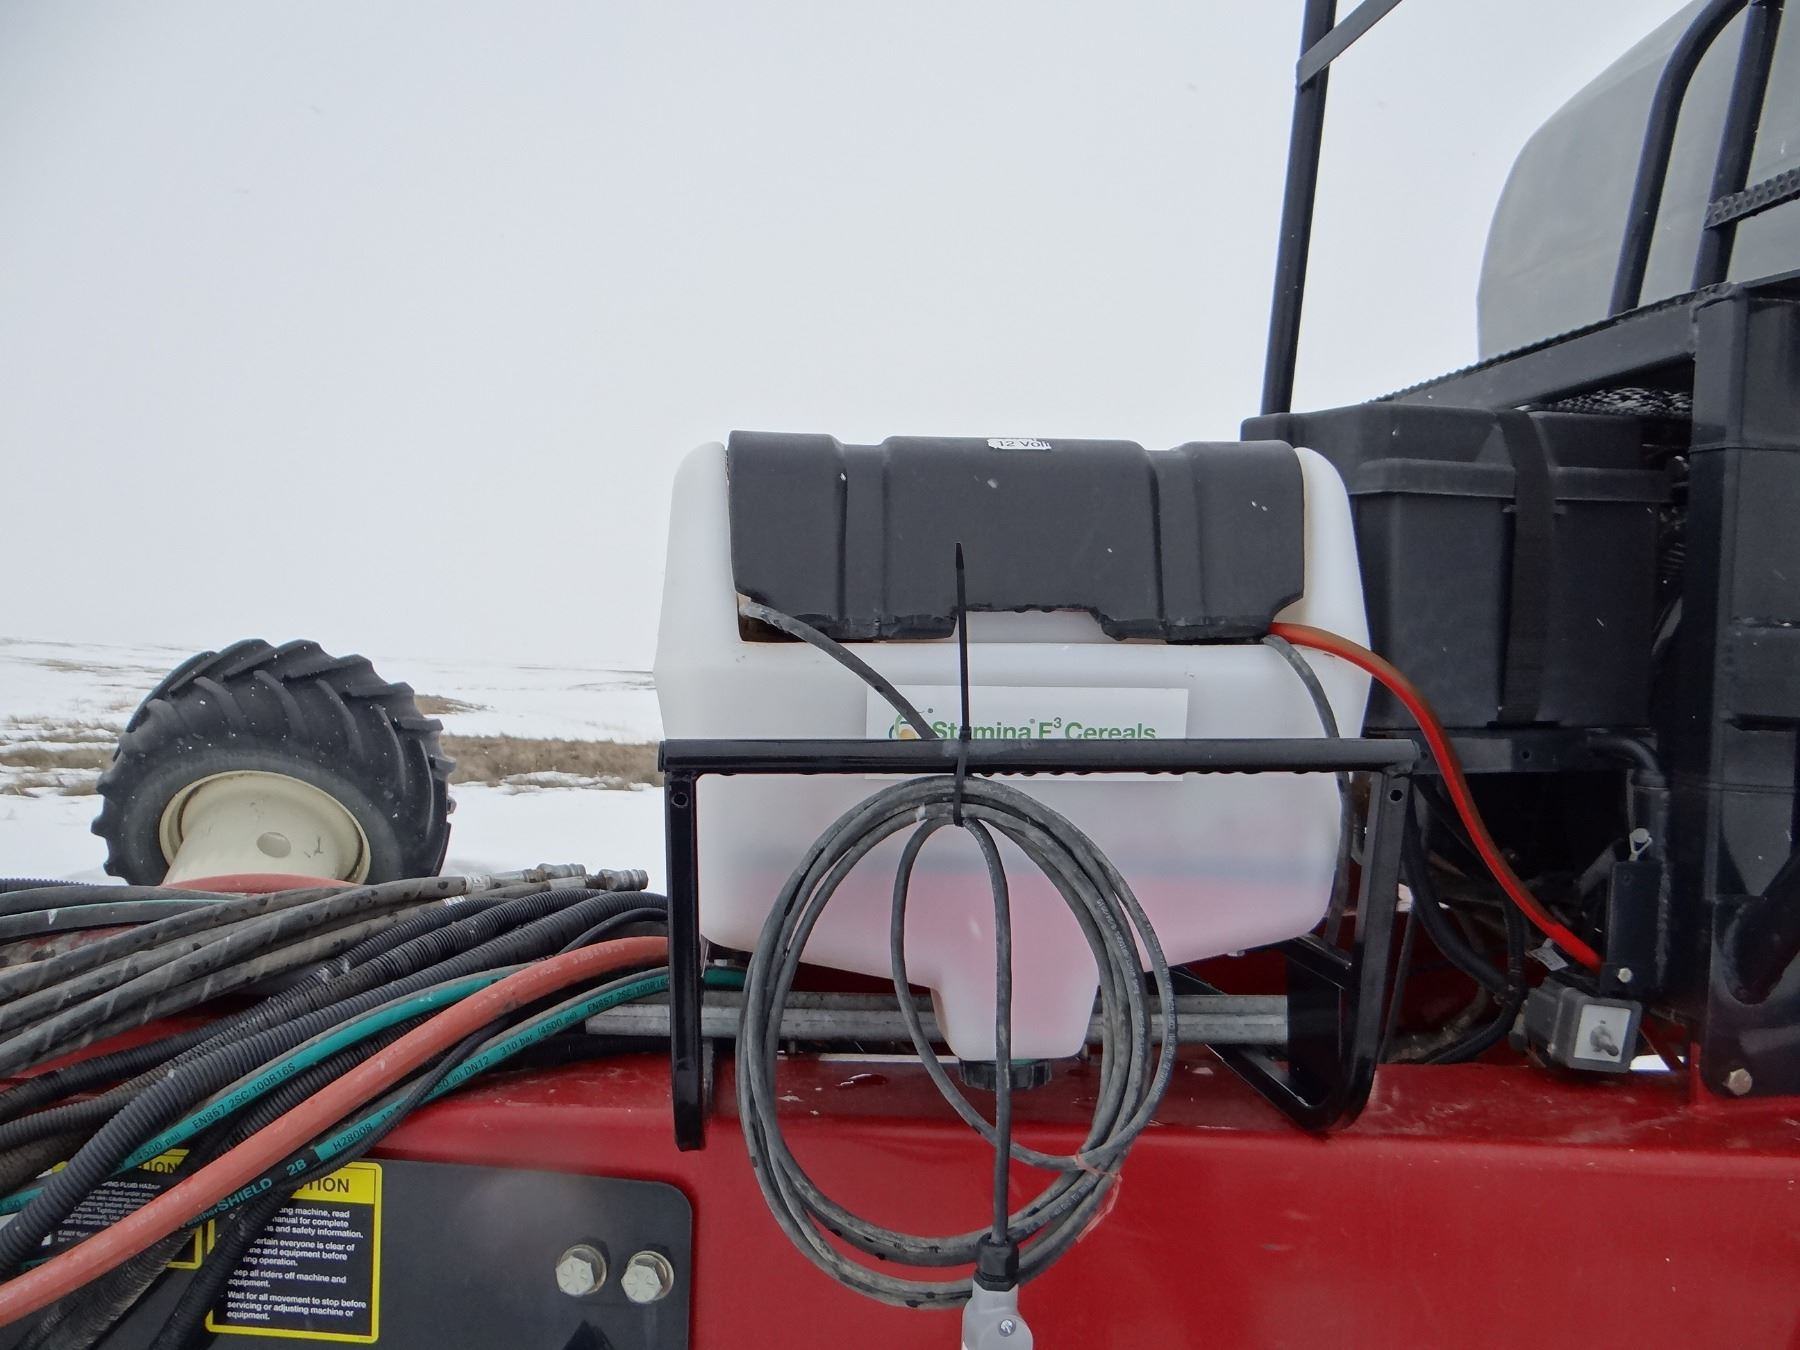 2012 Case Ih Atx700 Air Drill 70x10 Spacing W 3430 Tbt Tractor Wiring Image 18